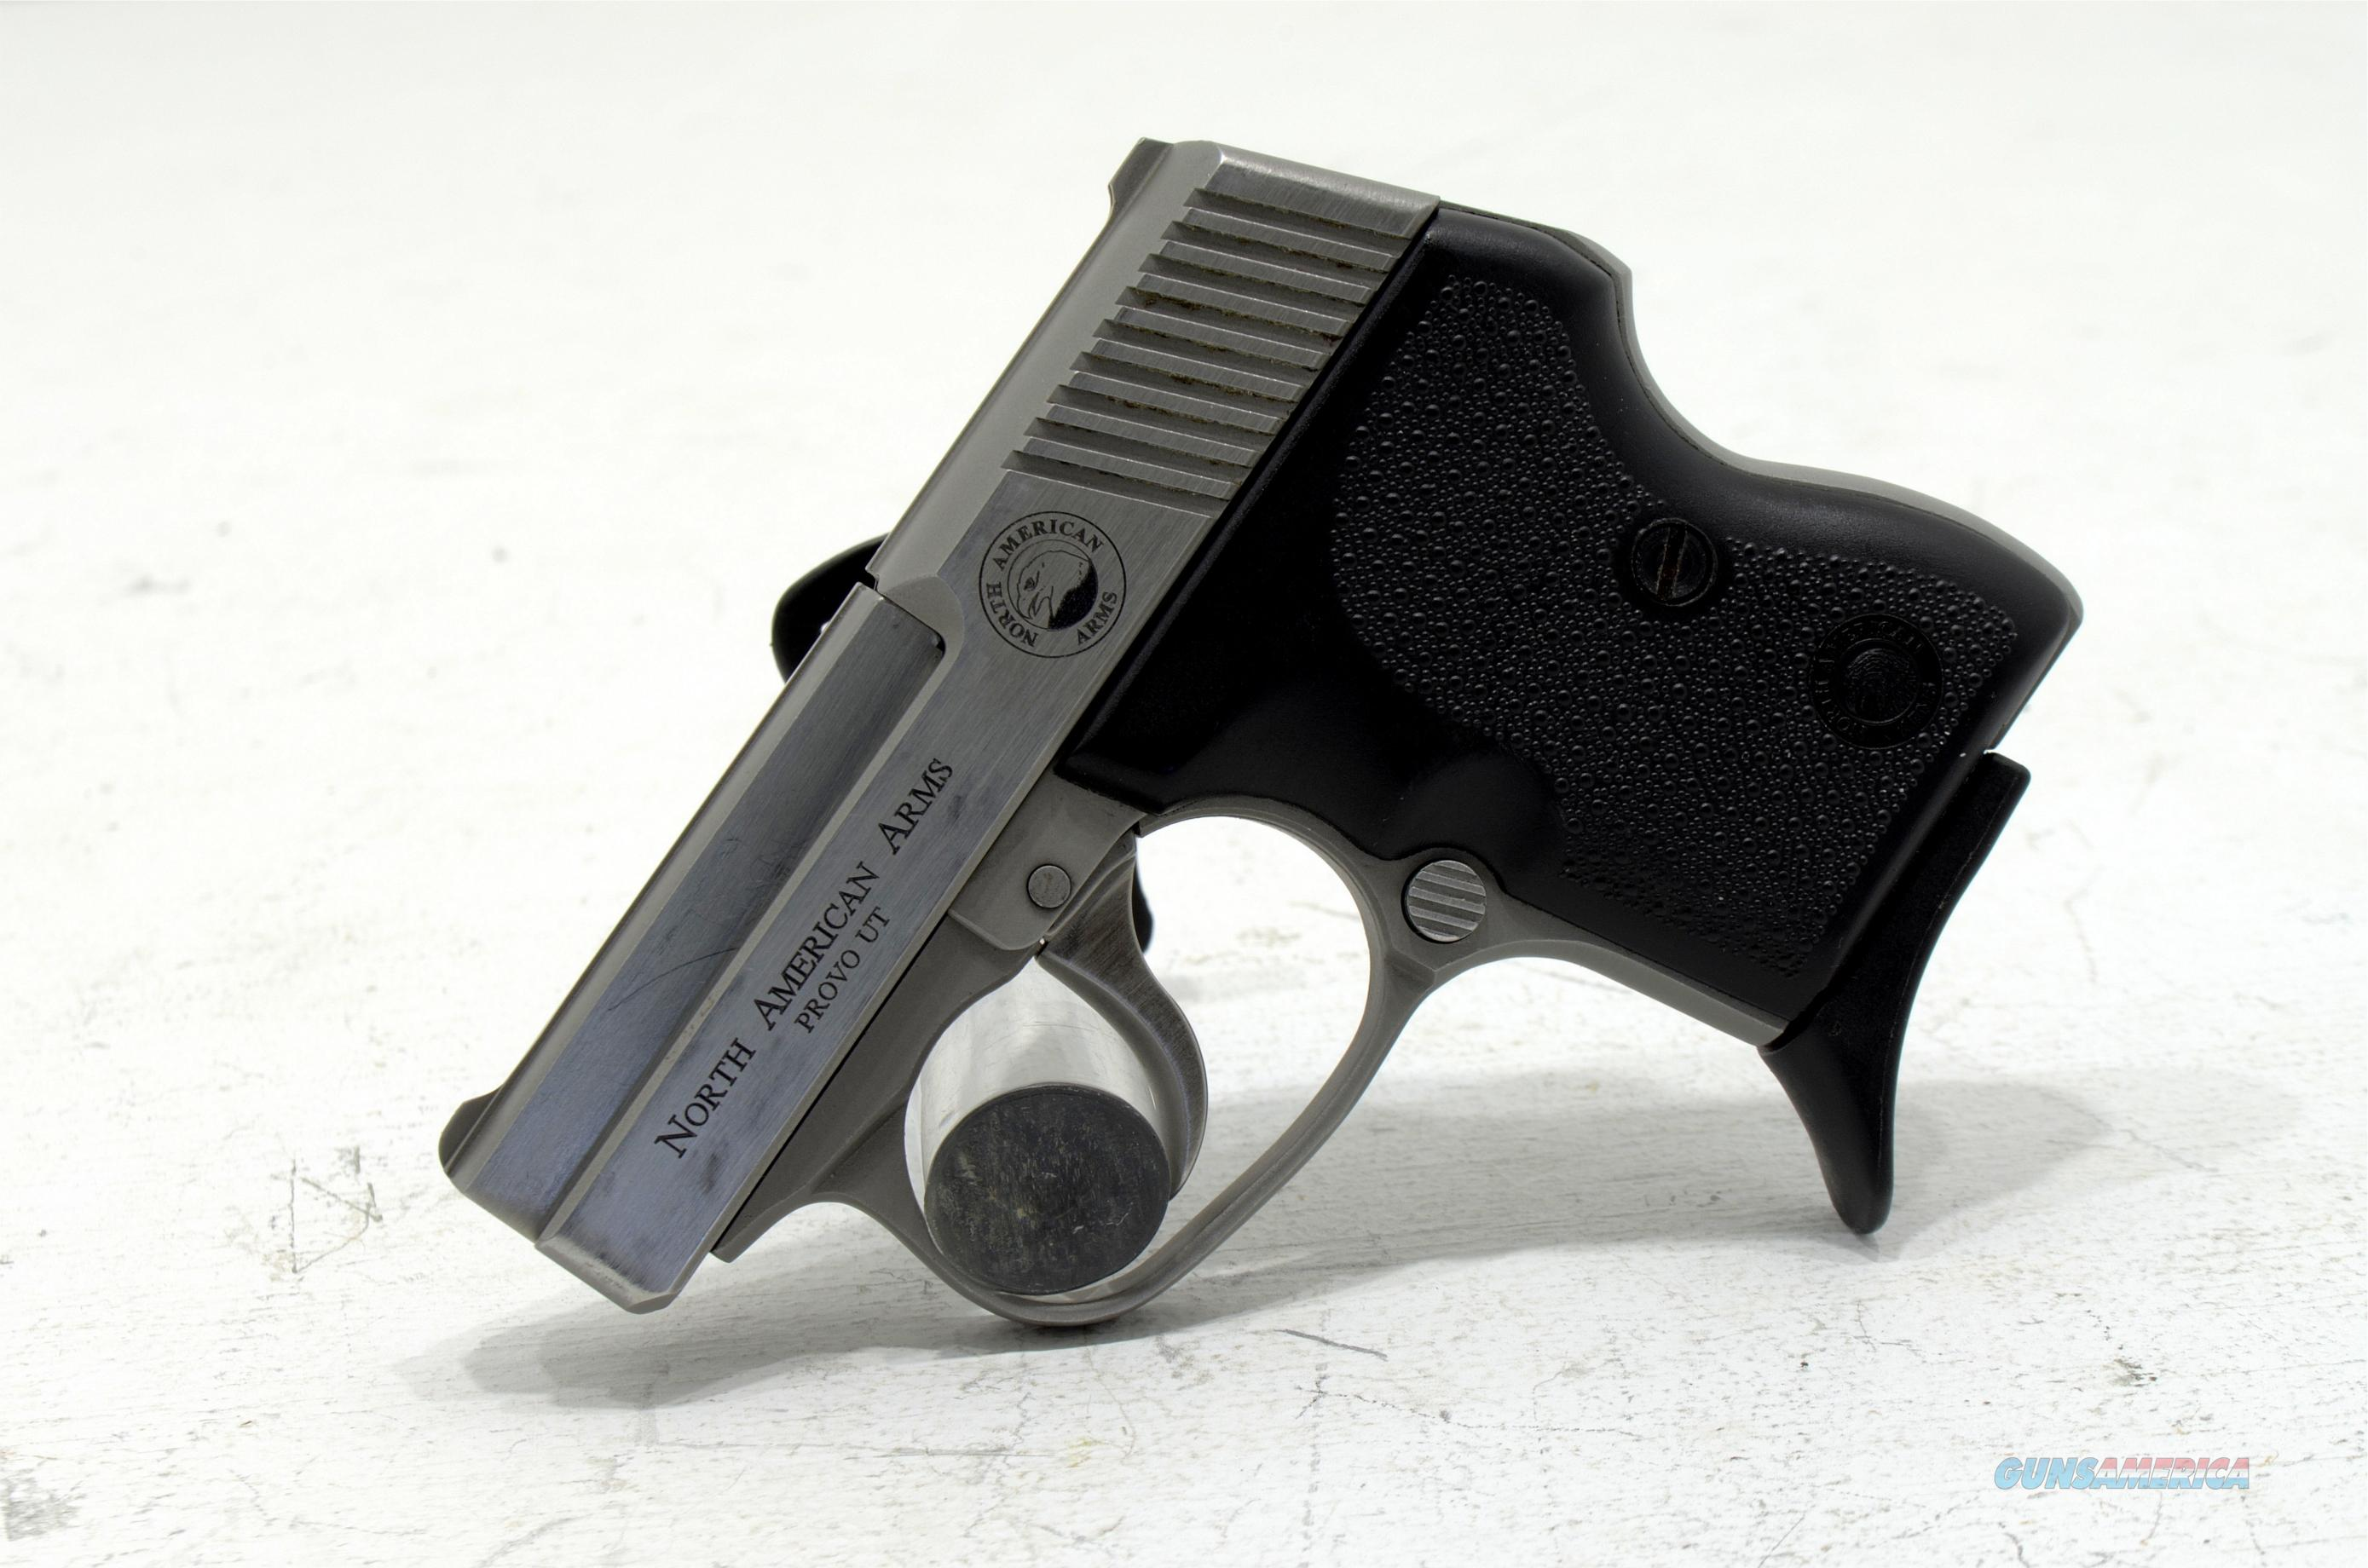 NORTH AMERICAN ARMS GUARDIAN 32 .32ACP  Guns > Pistols > North American Arms Pistols